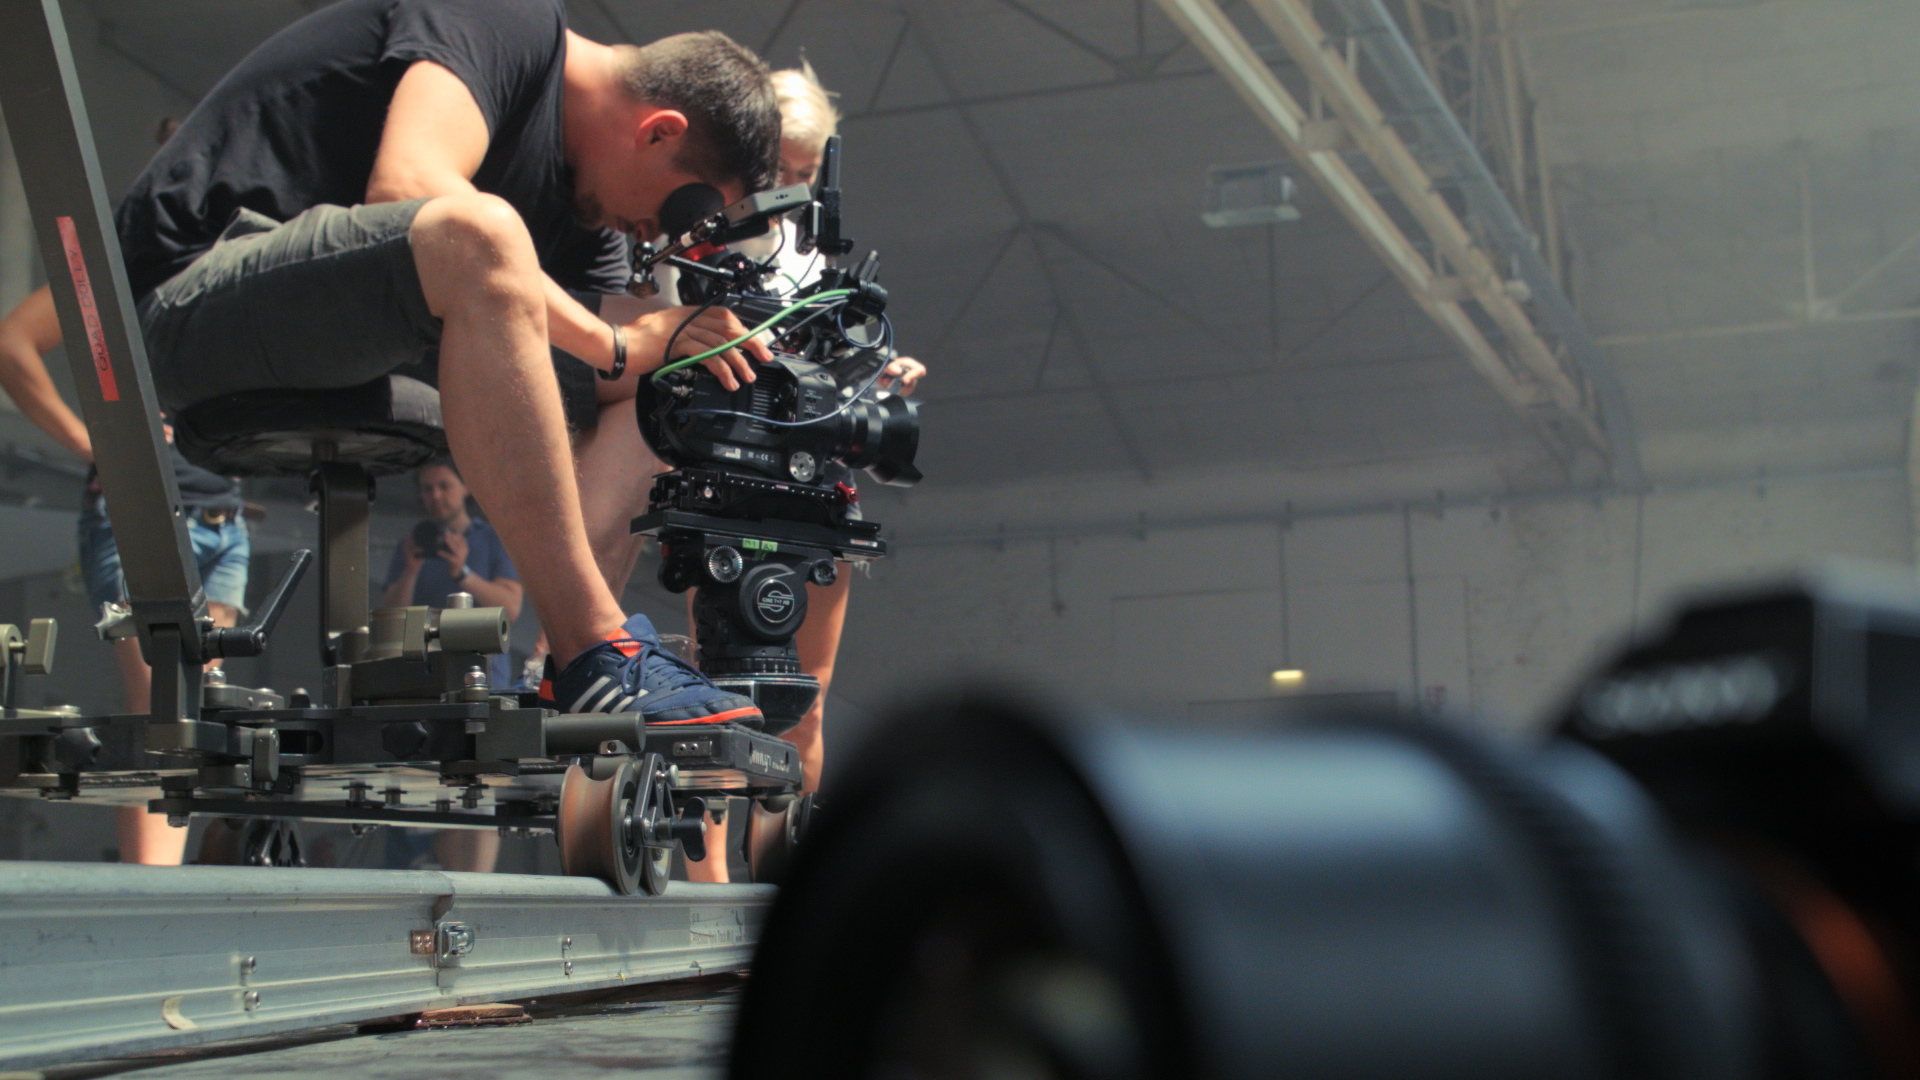 Nino with the Sony FS7 on the Dolly